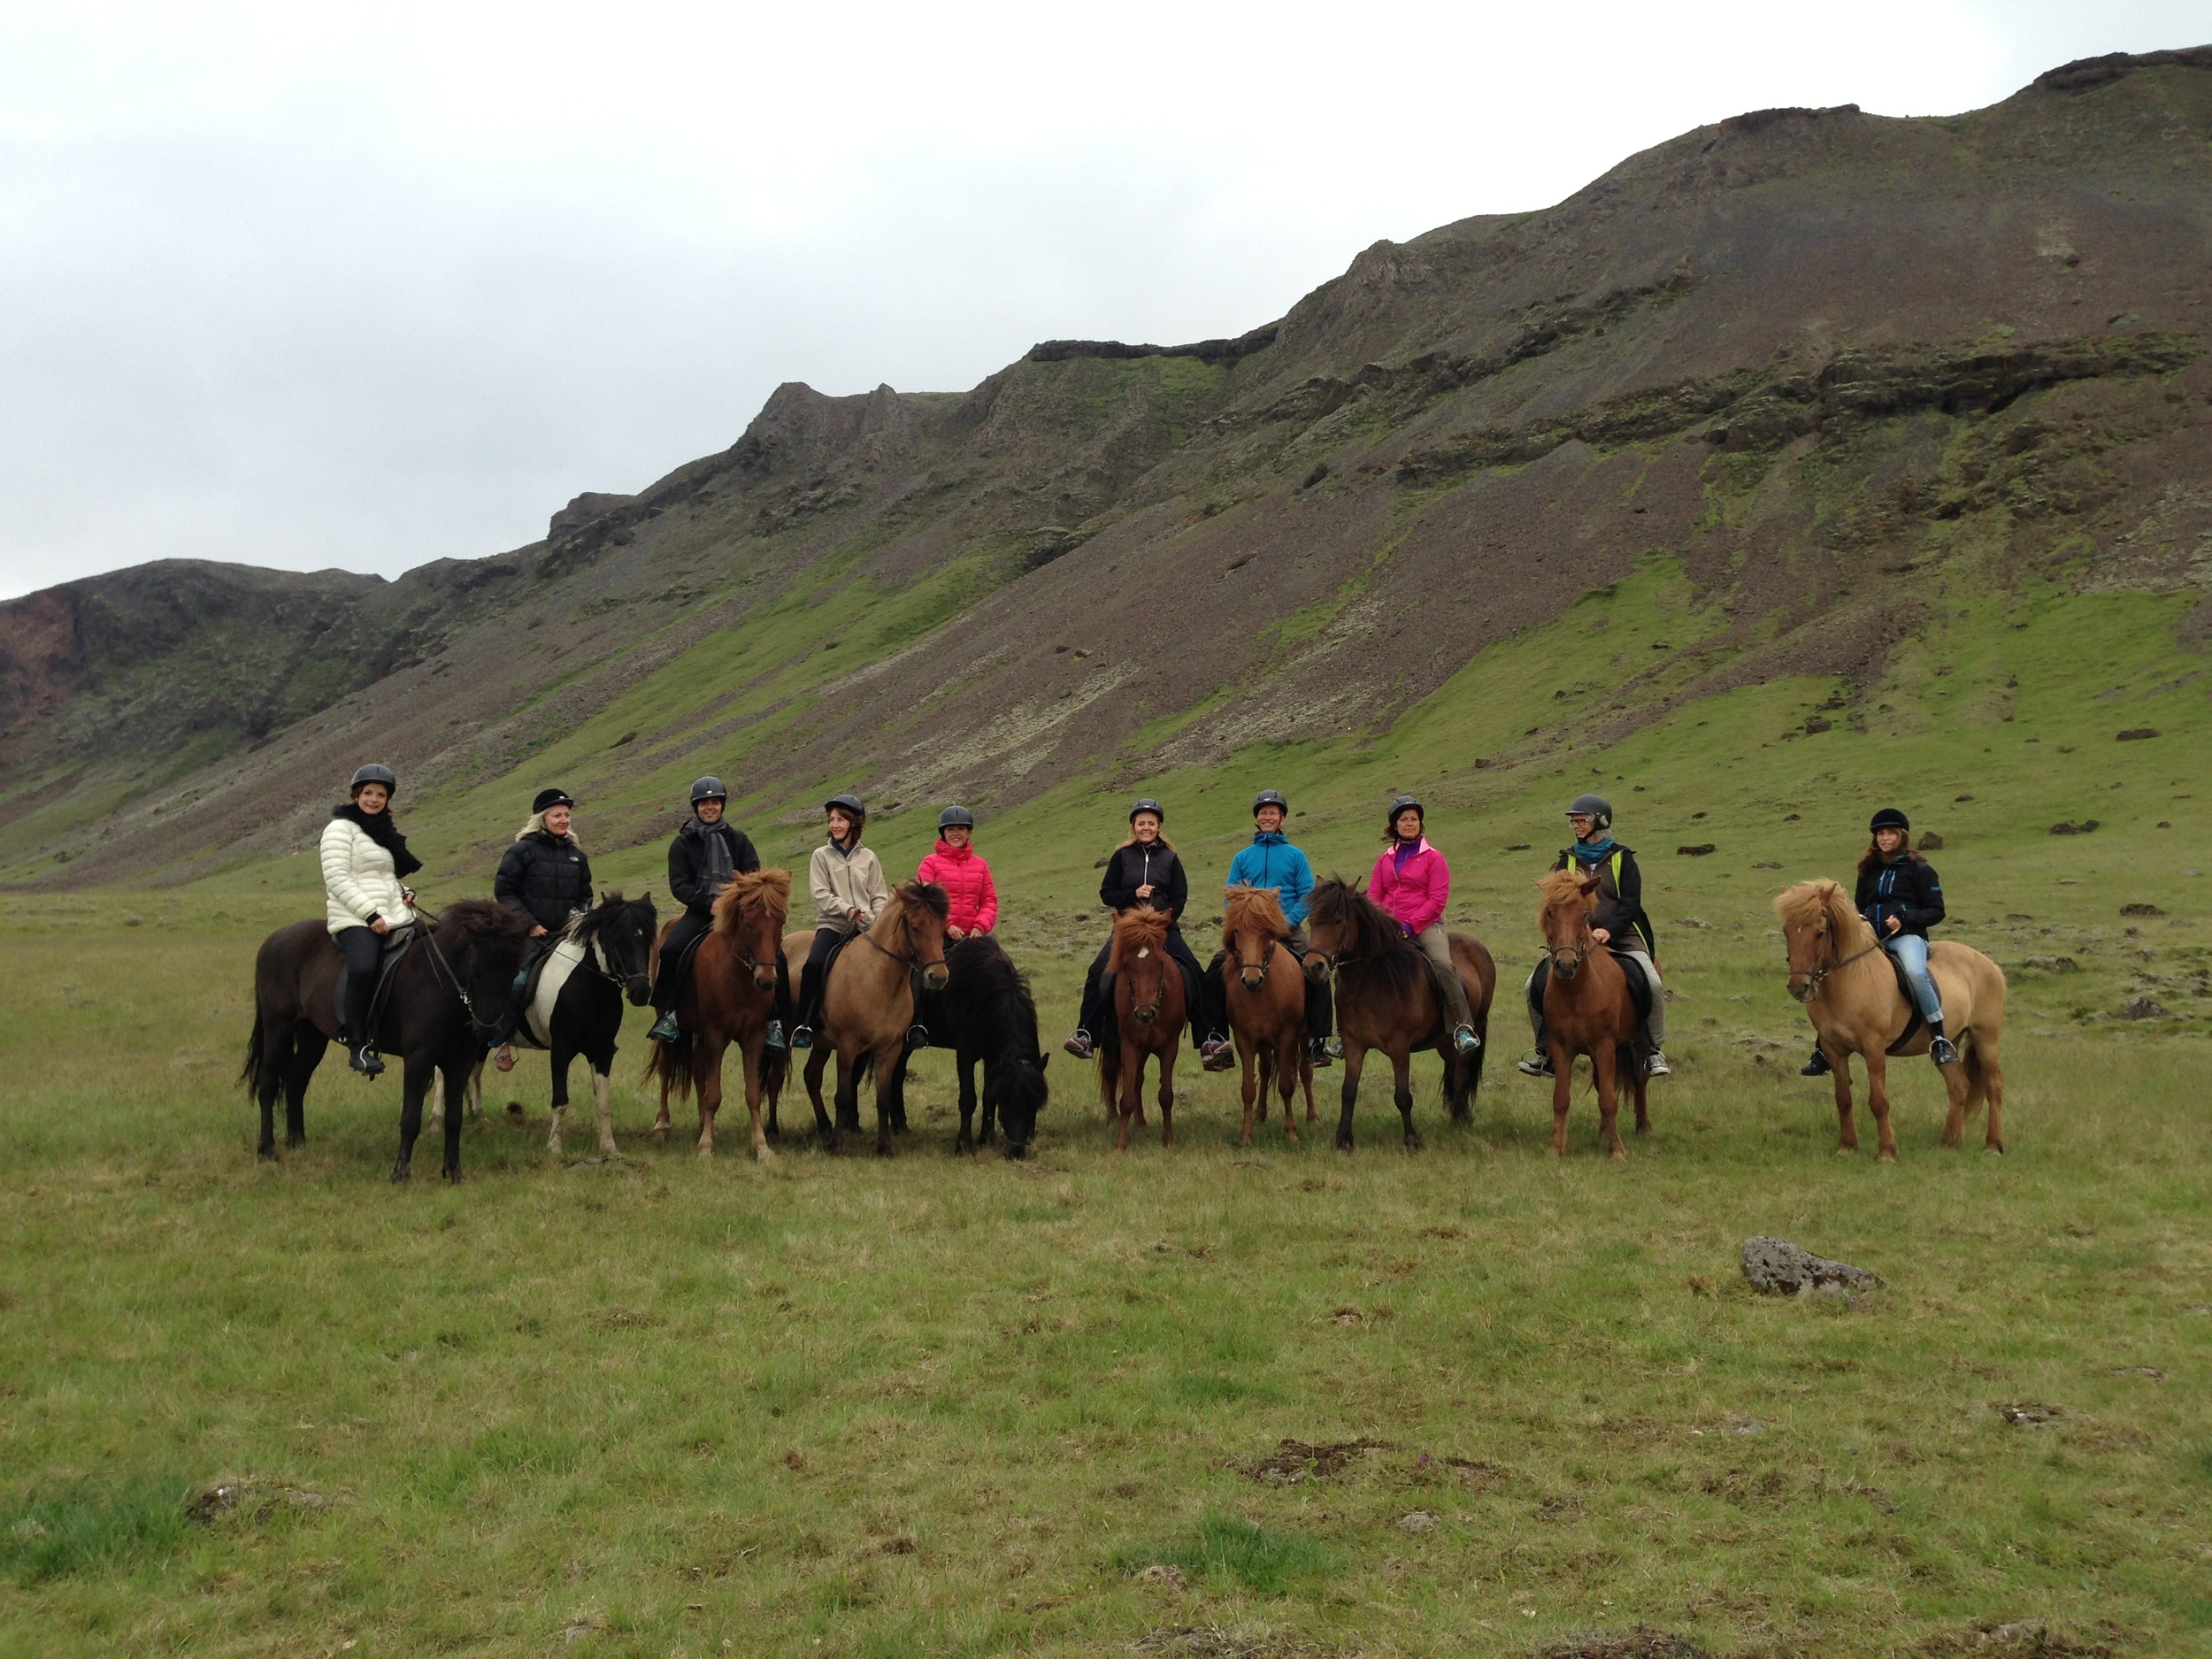 Some went for the horseback riding tour